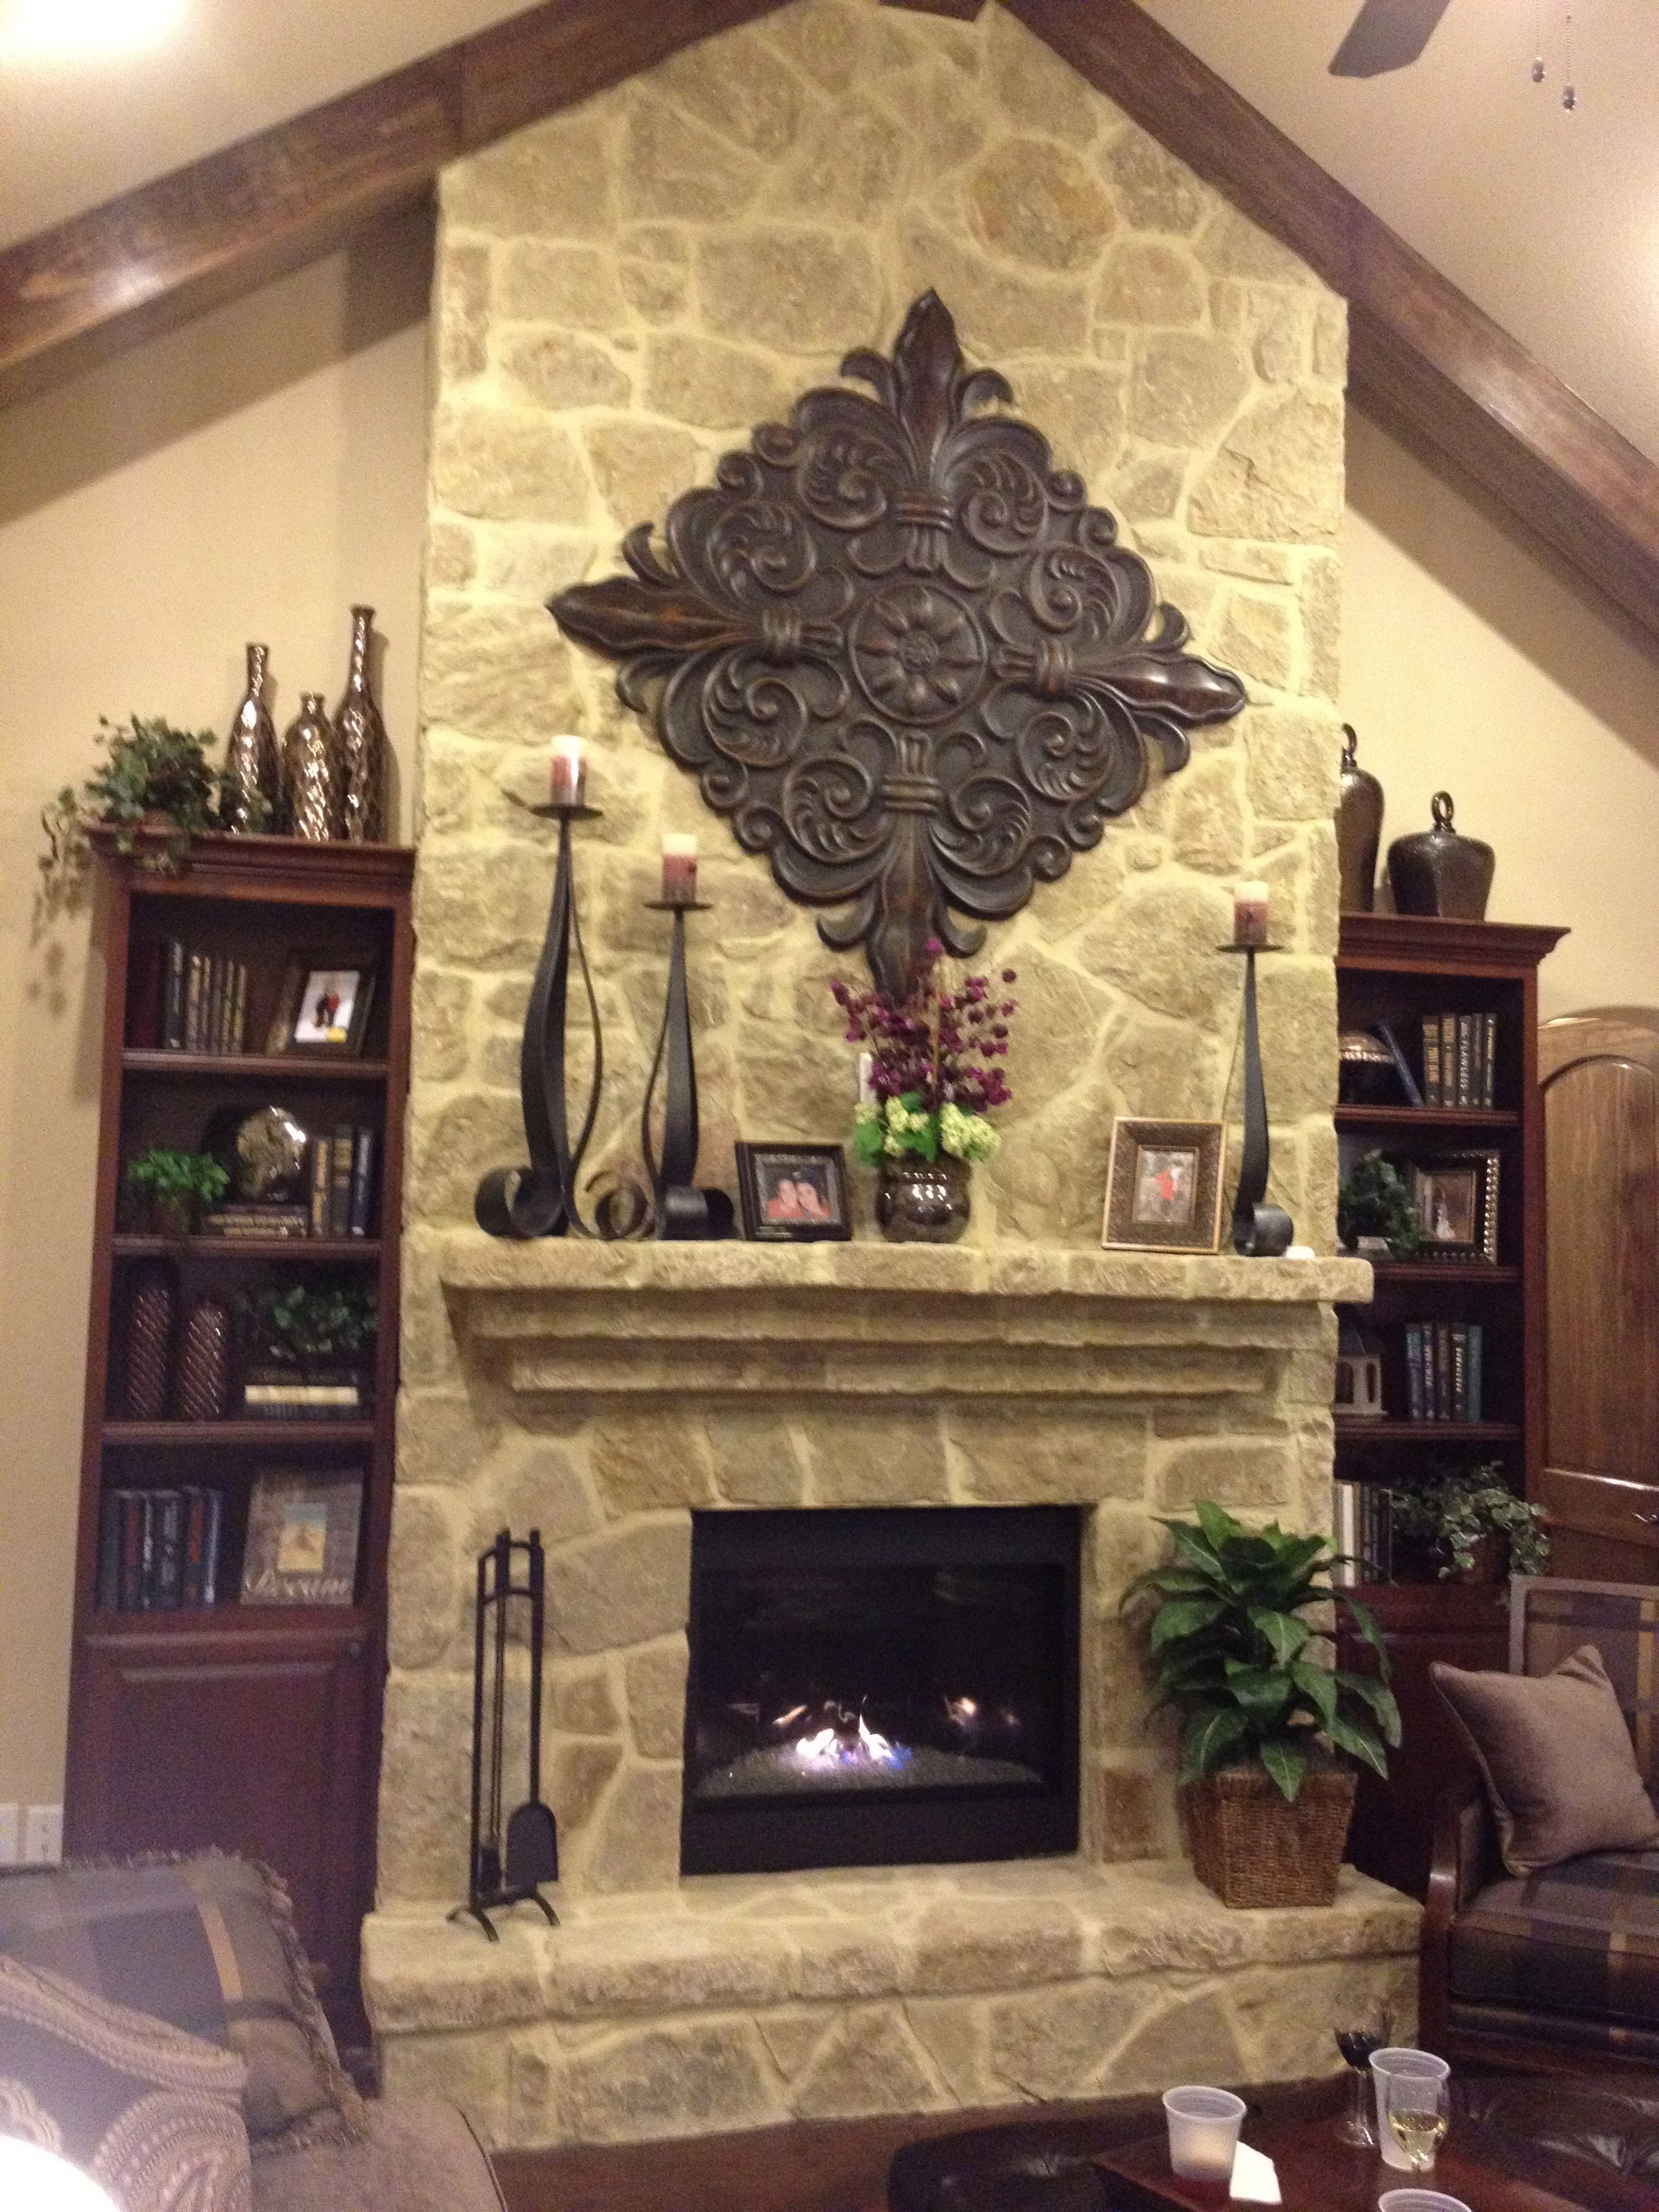 How To Decorate A Rustic Fireplace Mantel Decor Indoor Outdoor Image Of With Stone home decor